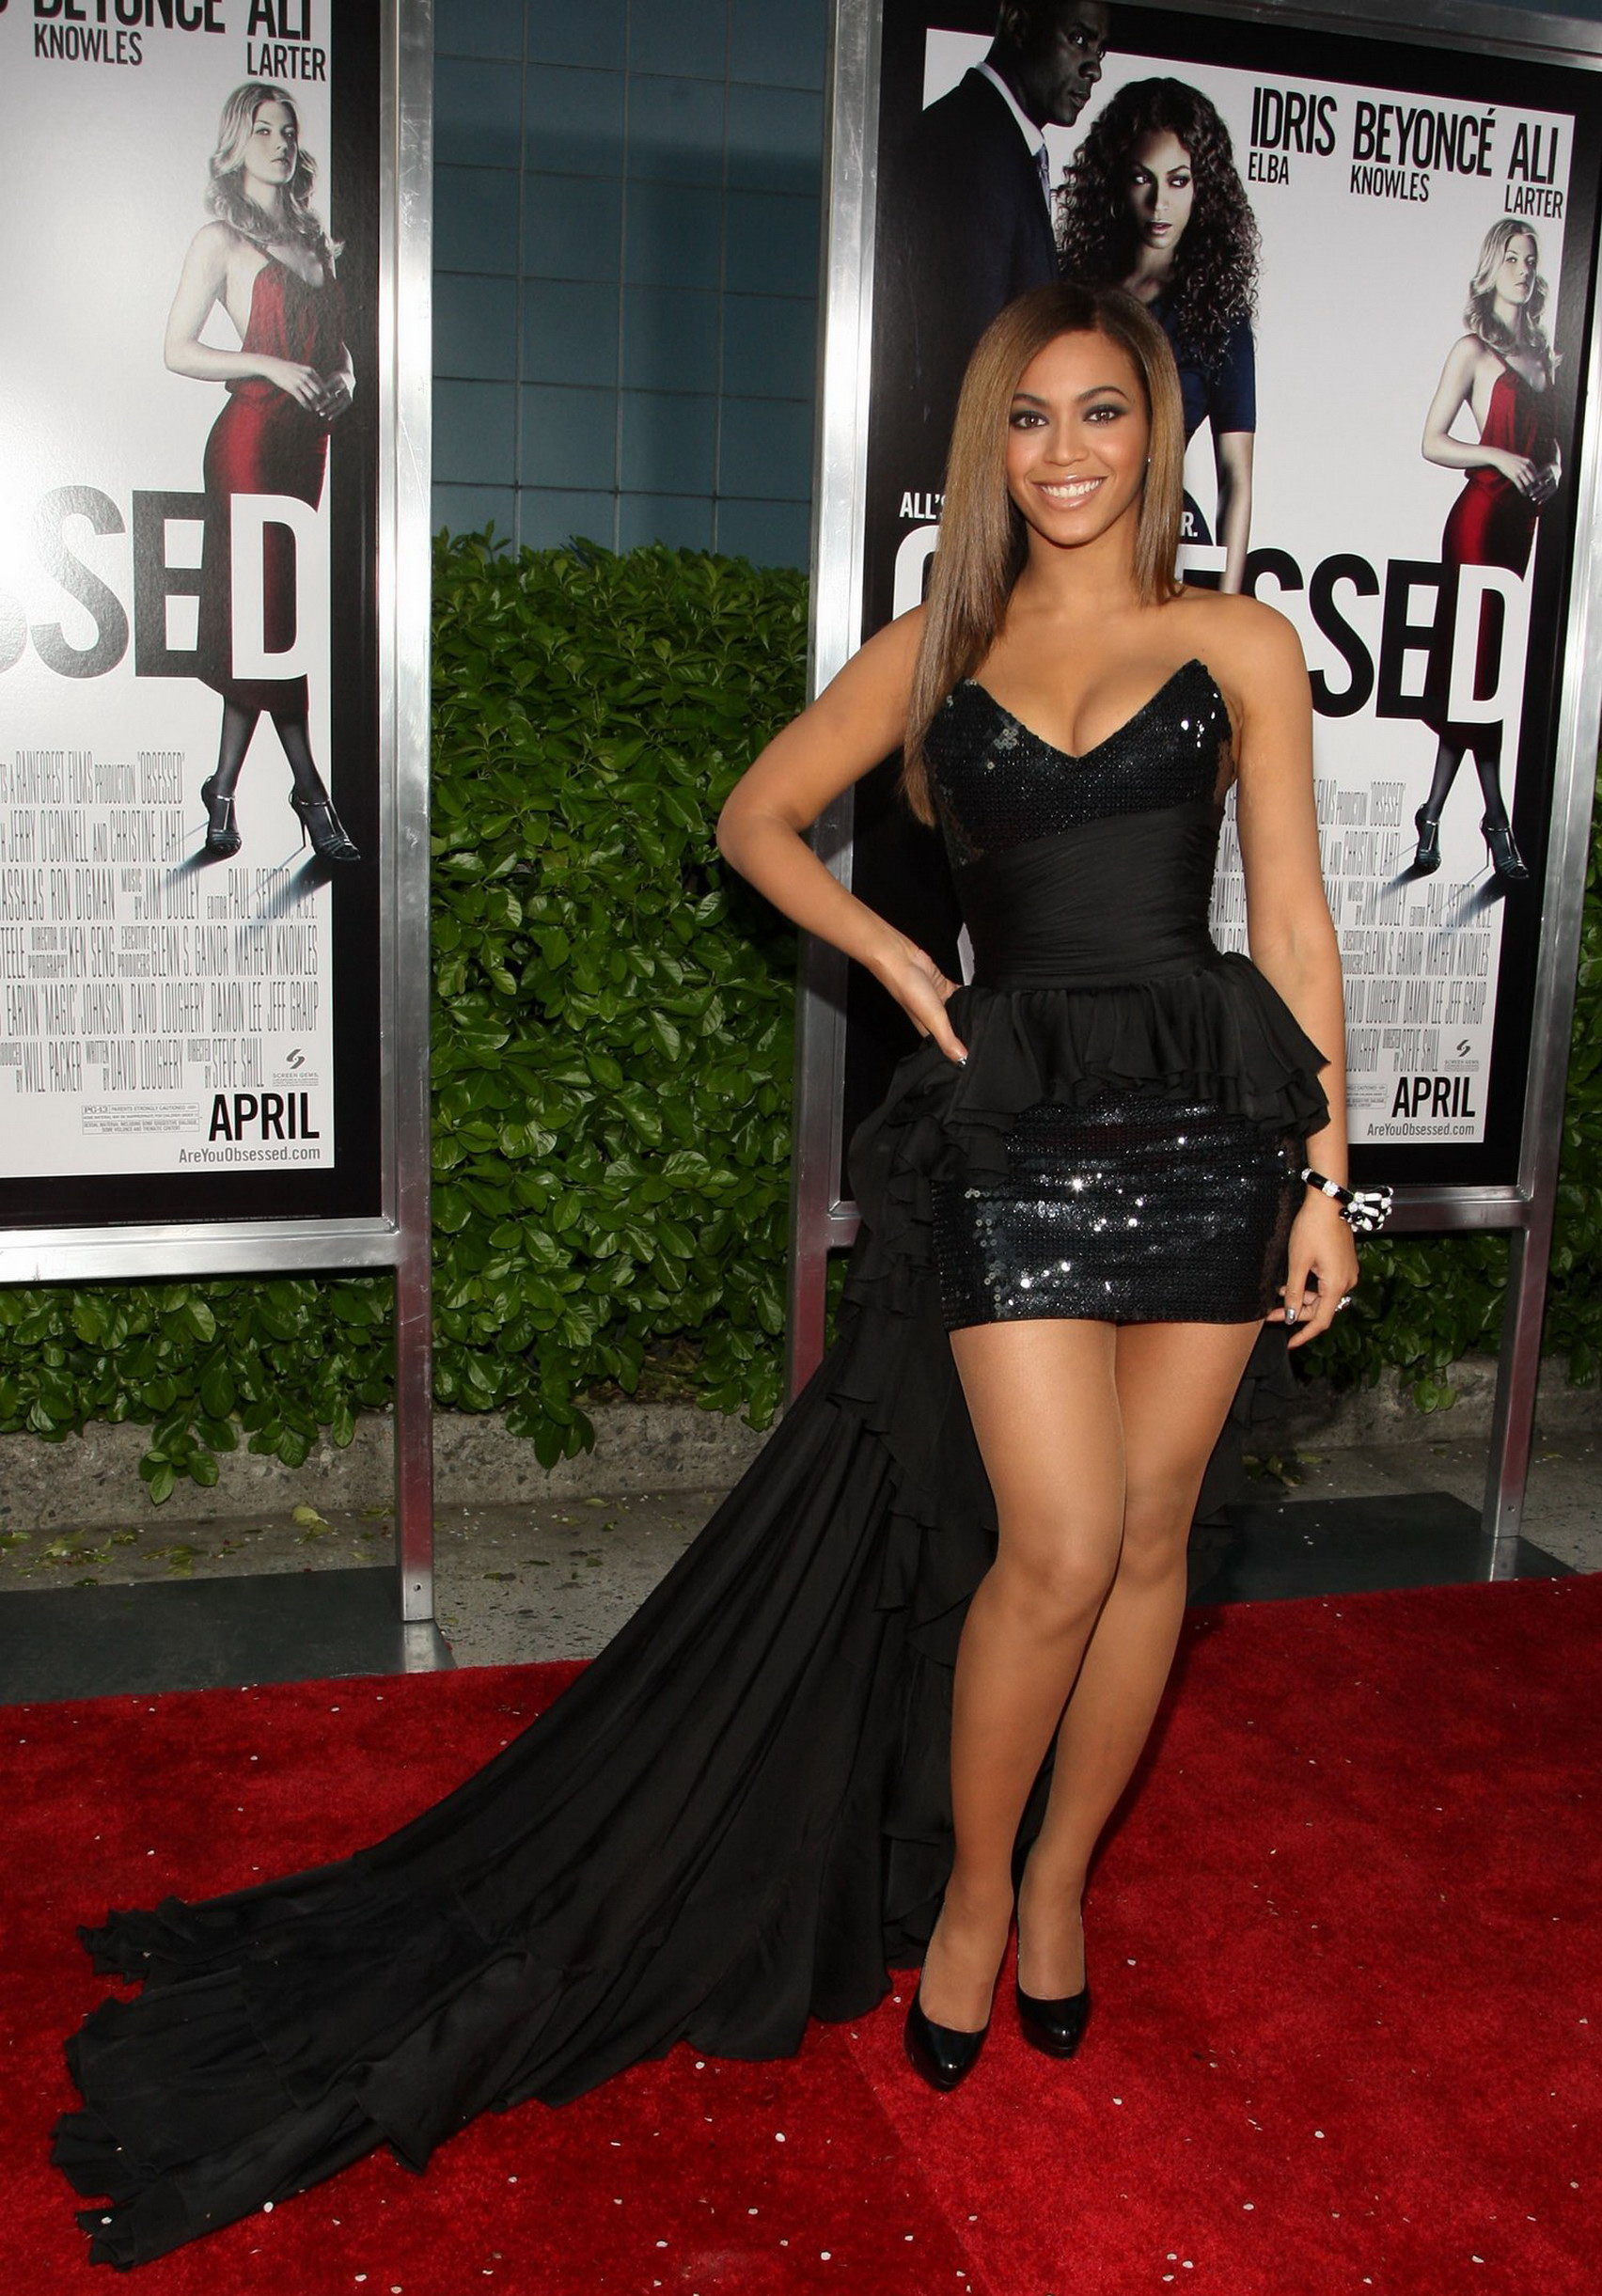 Beyonce-at-the-obsessed-premiere-wearing-a-beautiful-gown